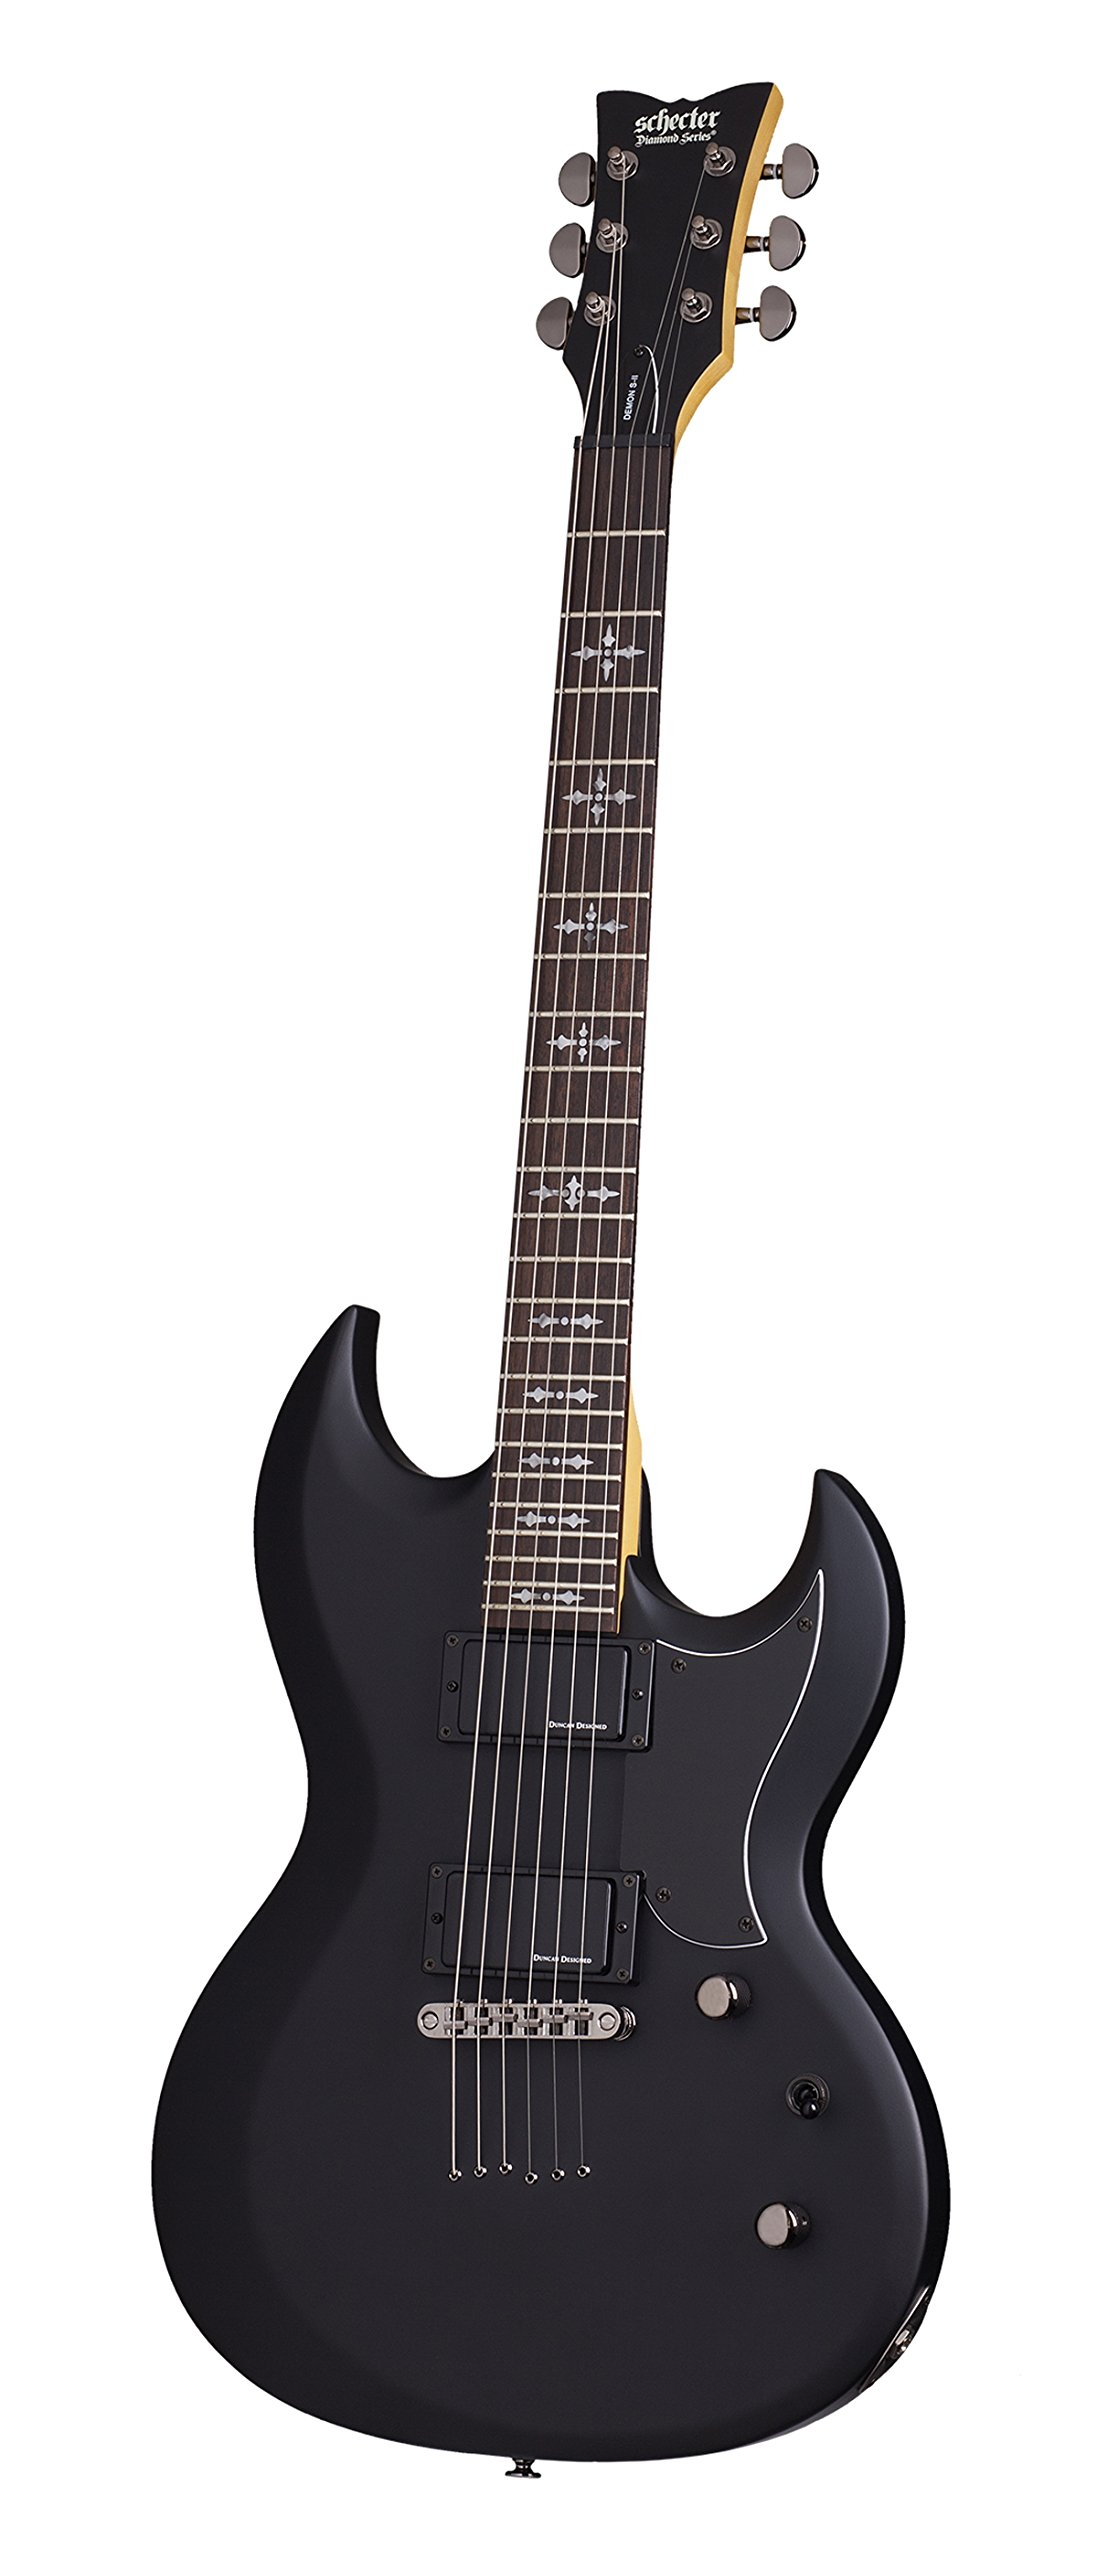 Schecter Demon S-II Solid-Body Electric Guitar, SBK by Schecter